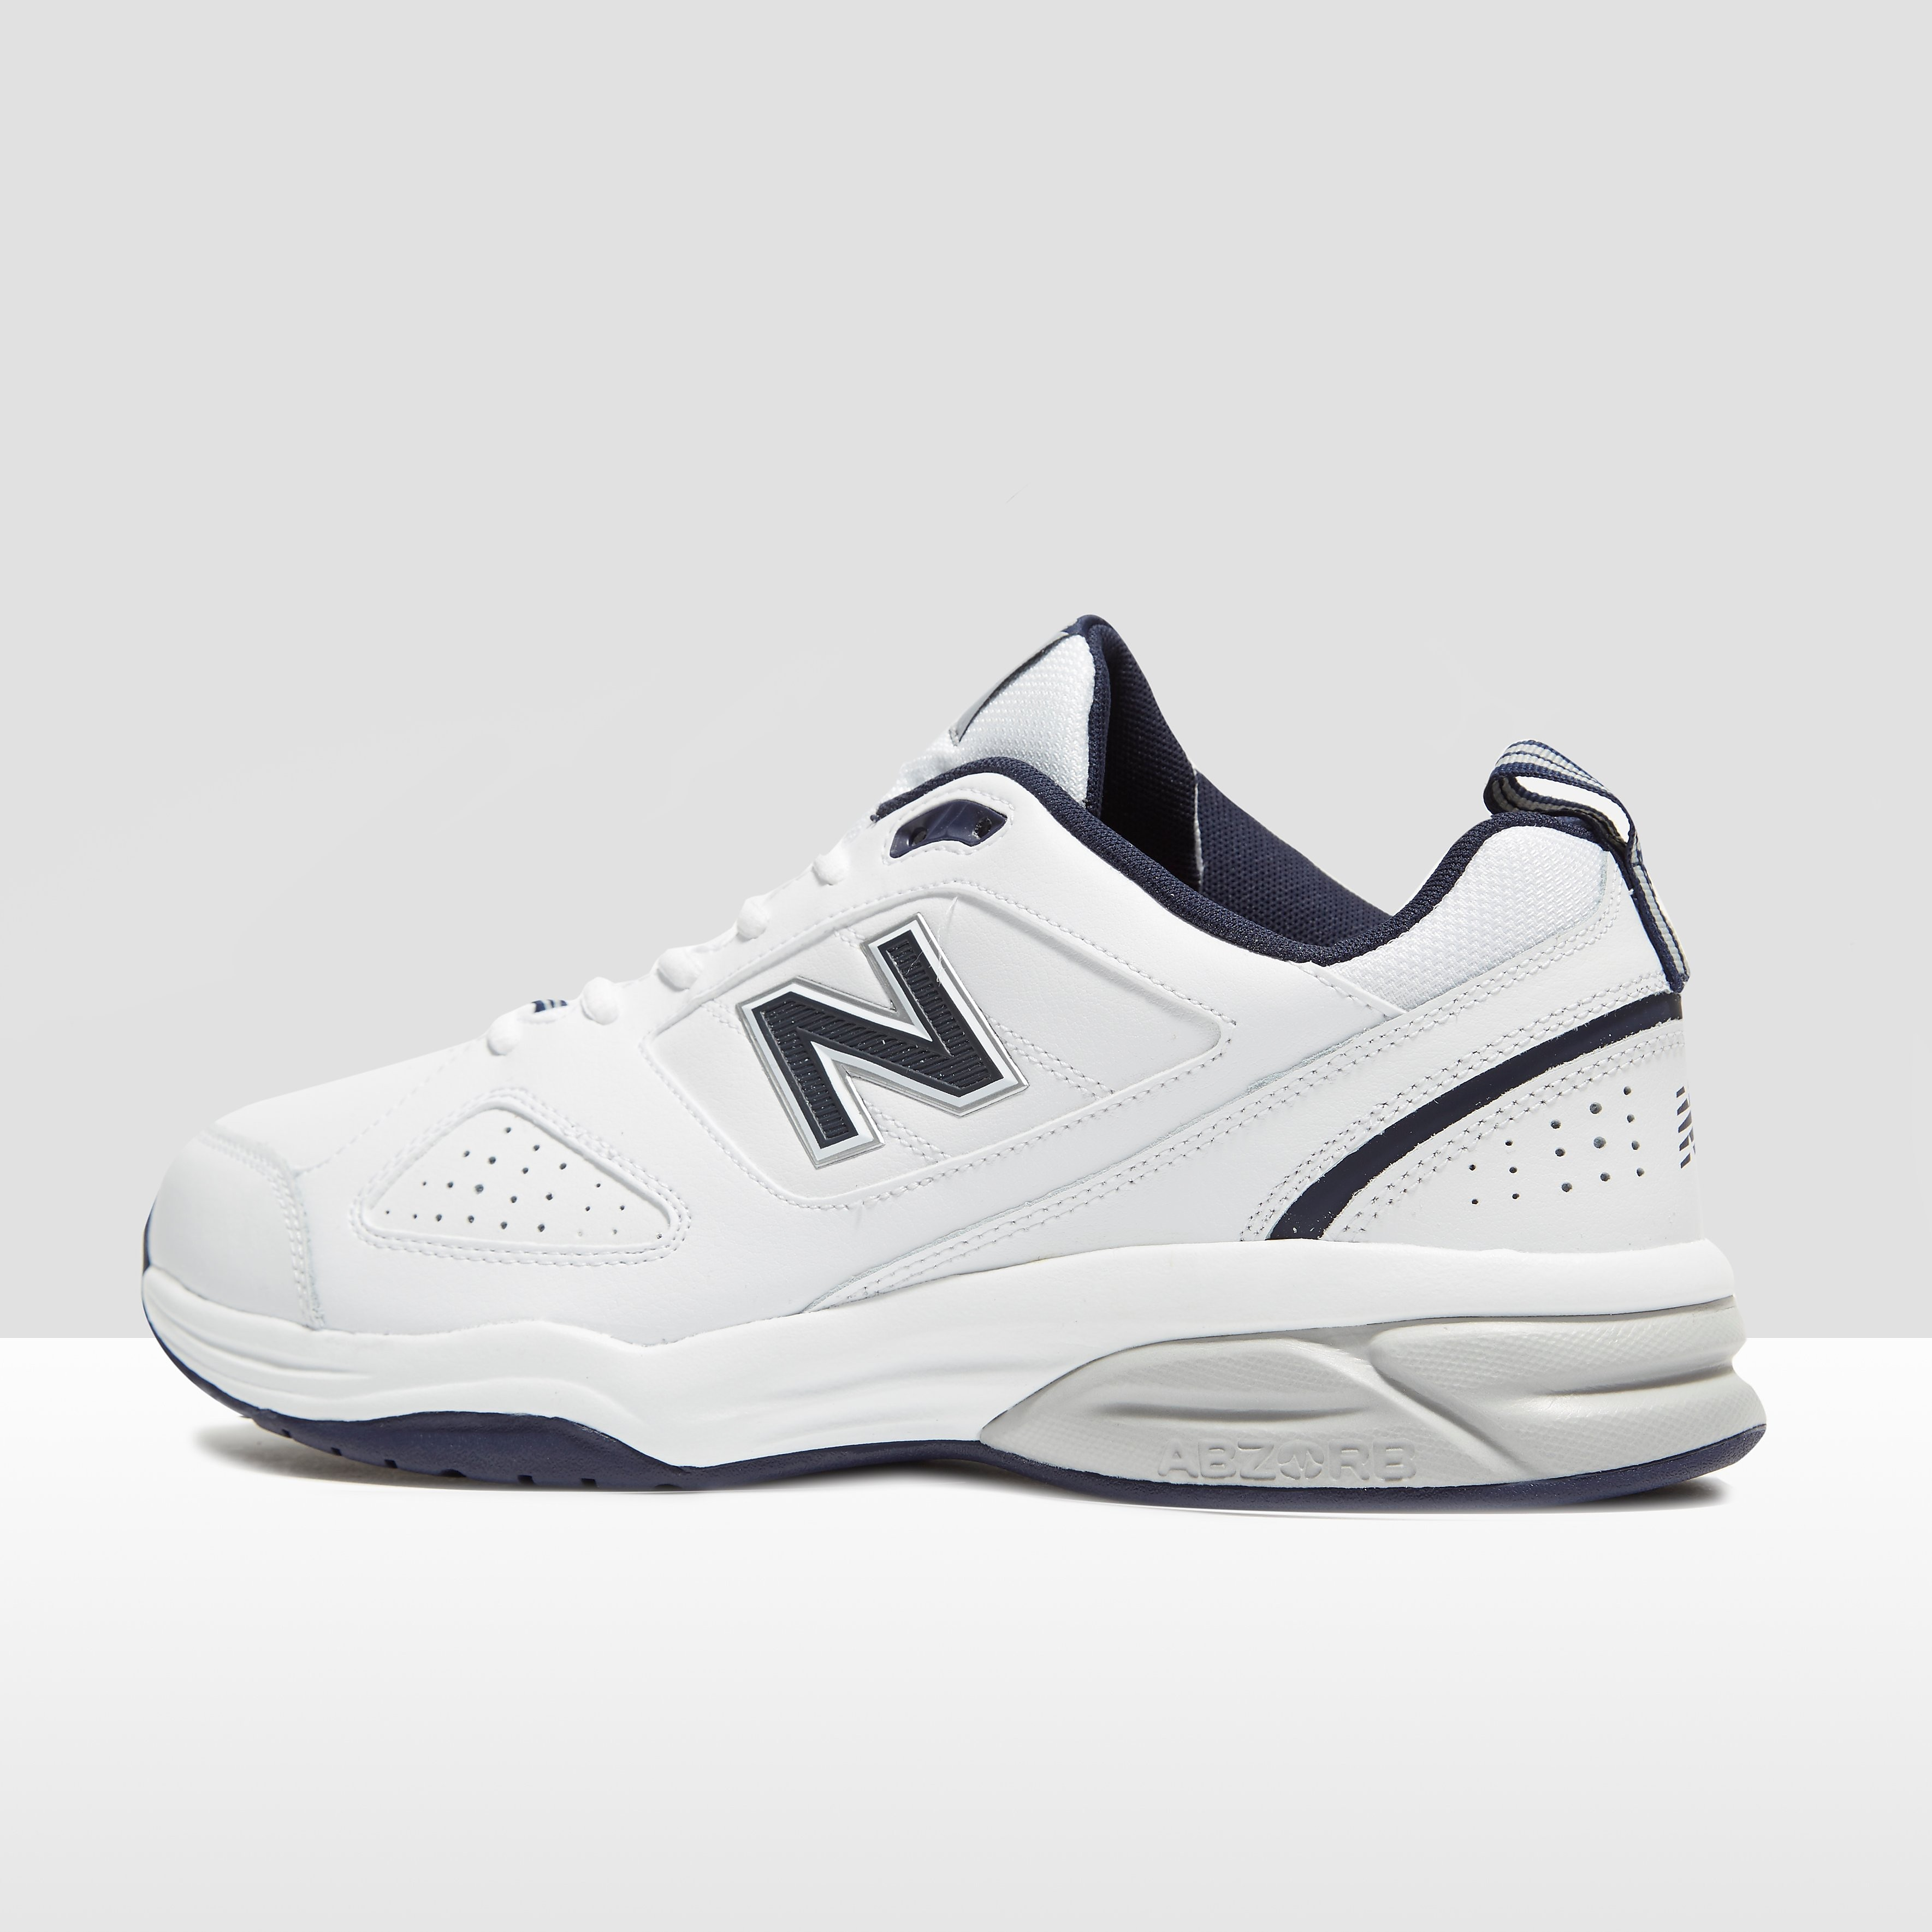 New Balance 624v4 Men's Trainers